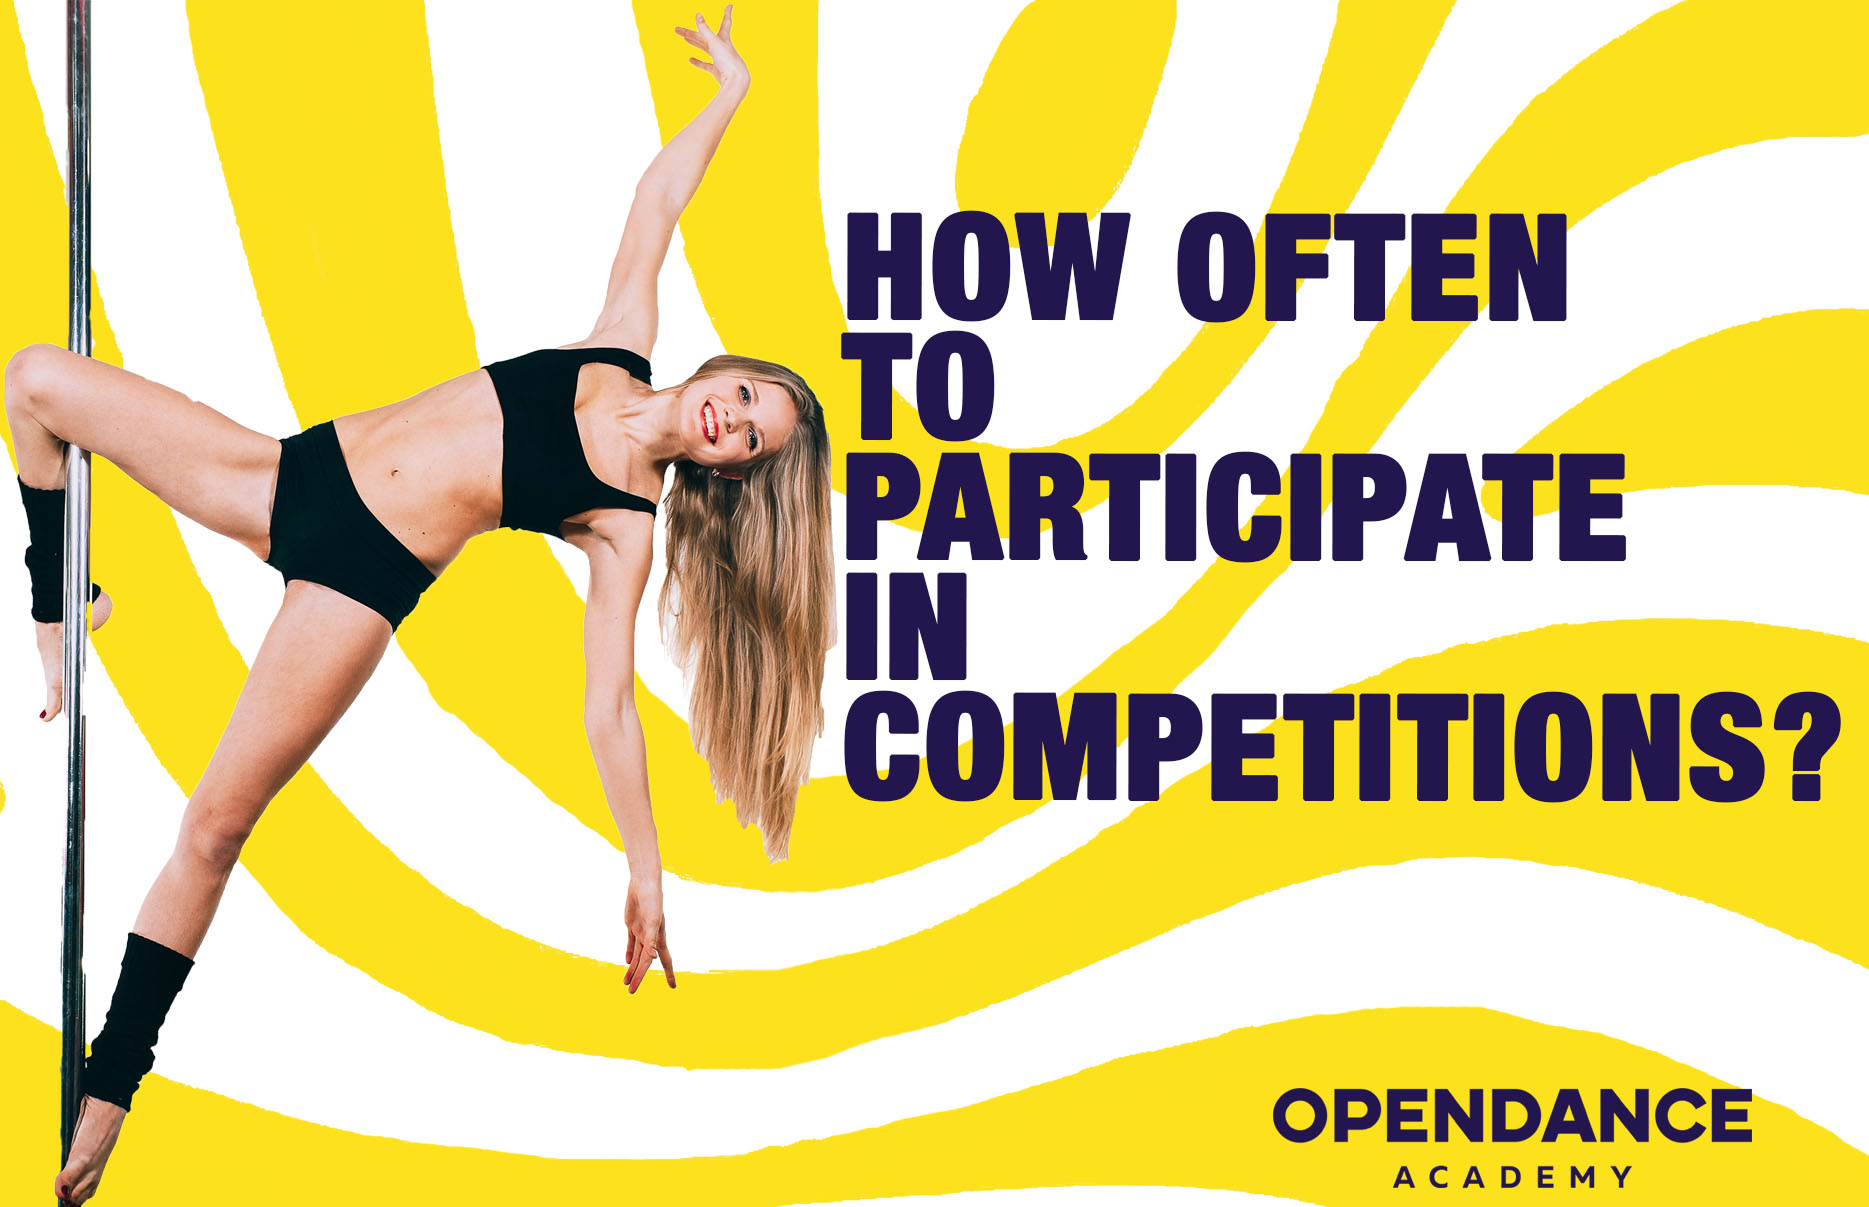 How Often to Participate in Competitions?